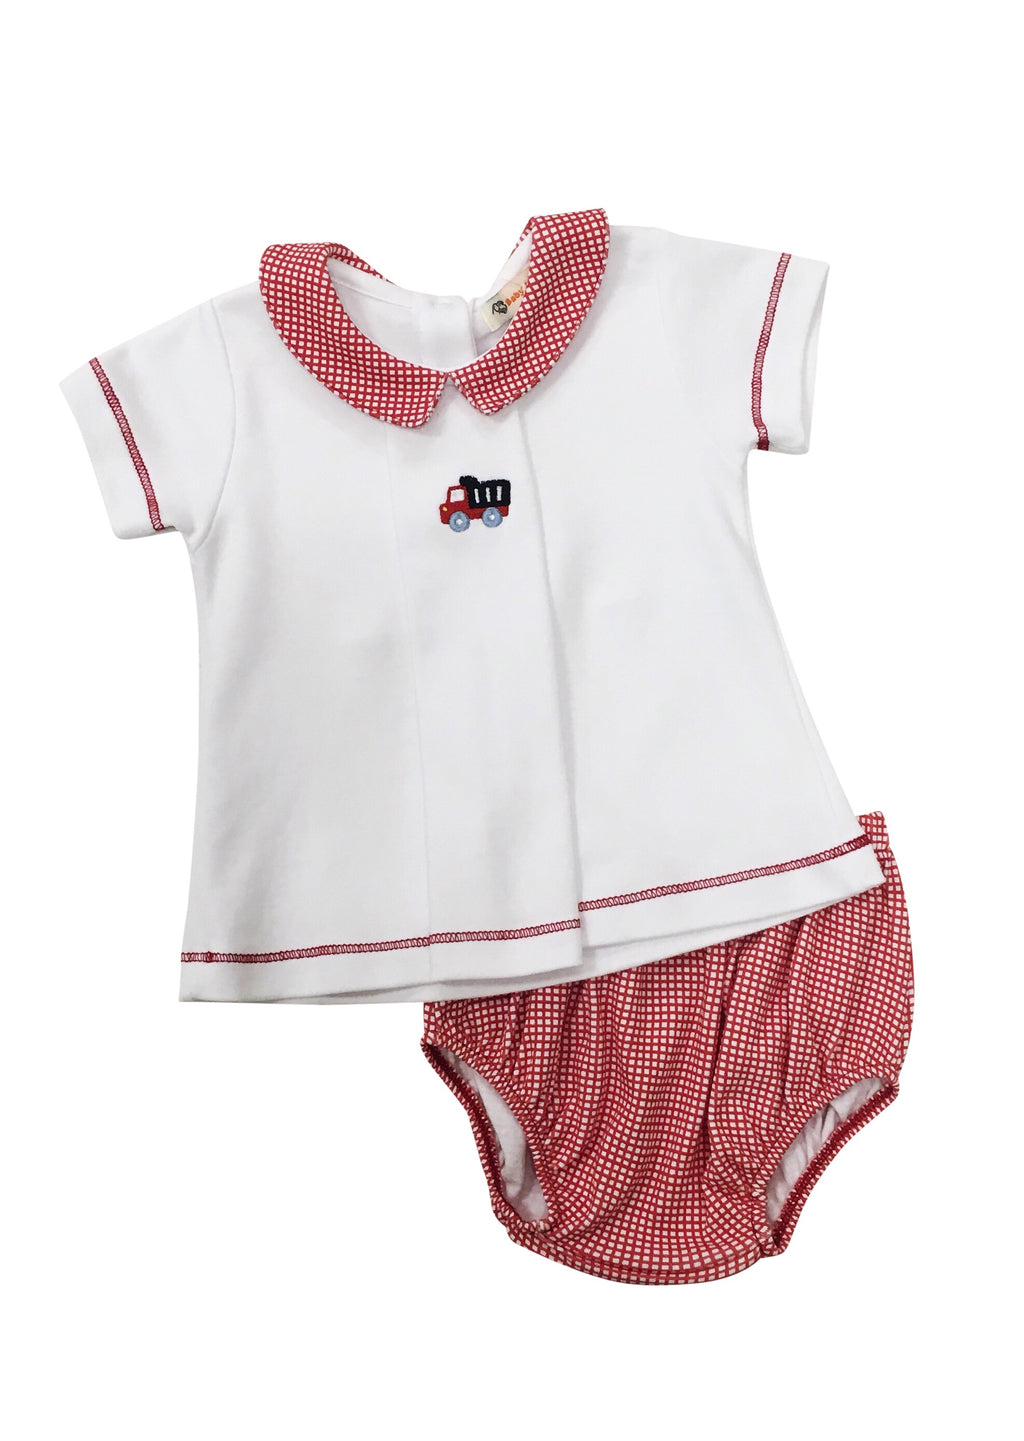 Boy White with Red Gingham Knit Bloomer Set - Dump Truck - Born Childrens Boutique